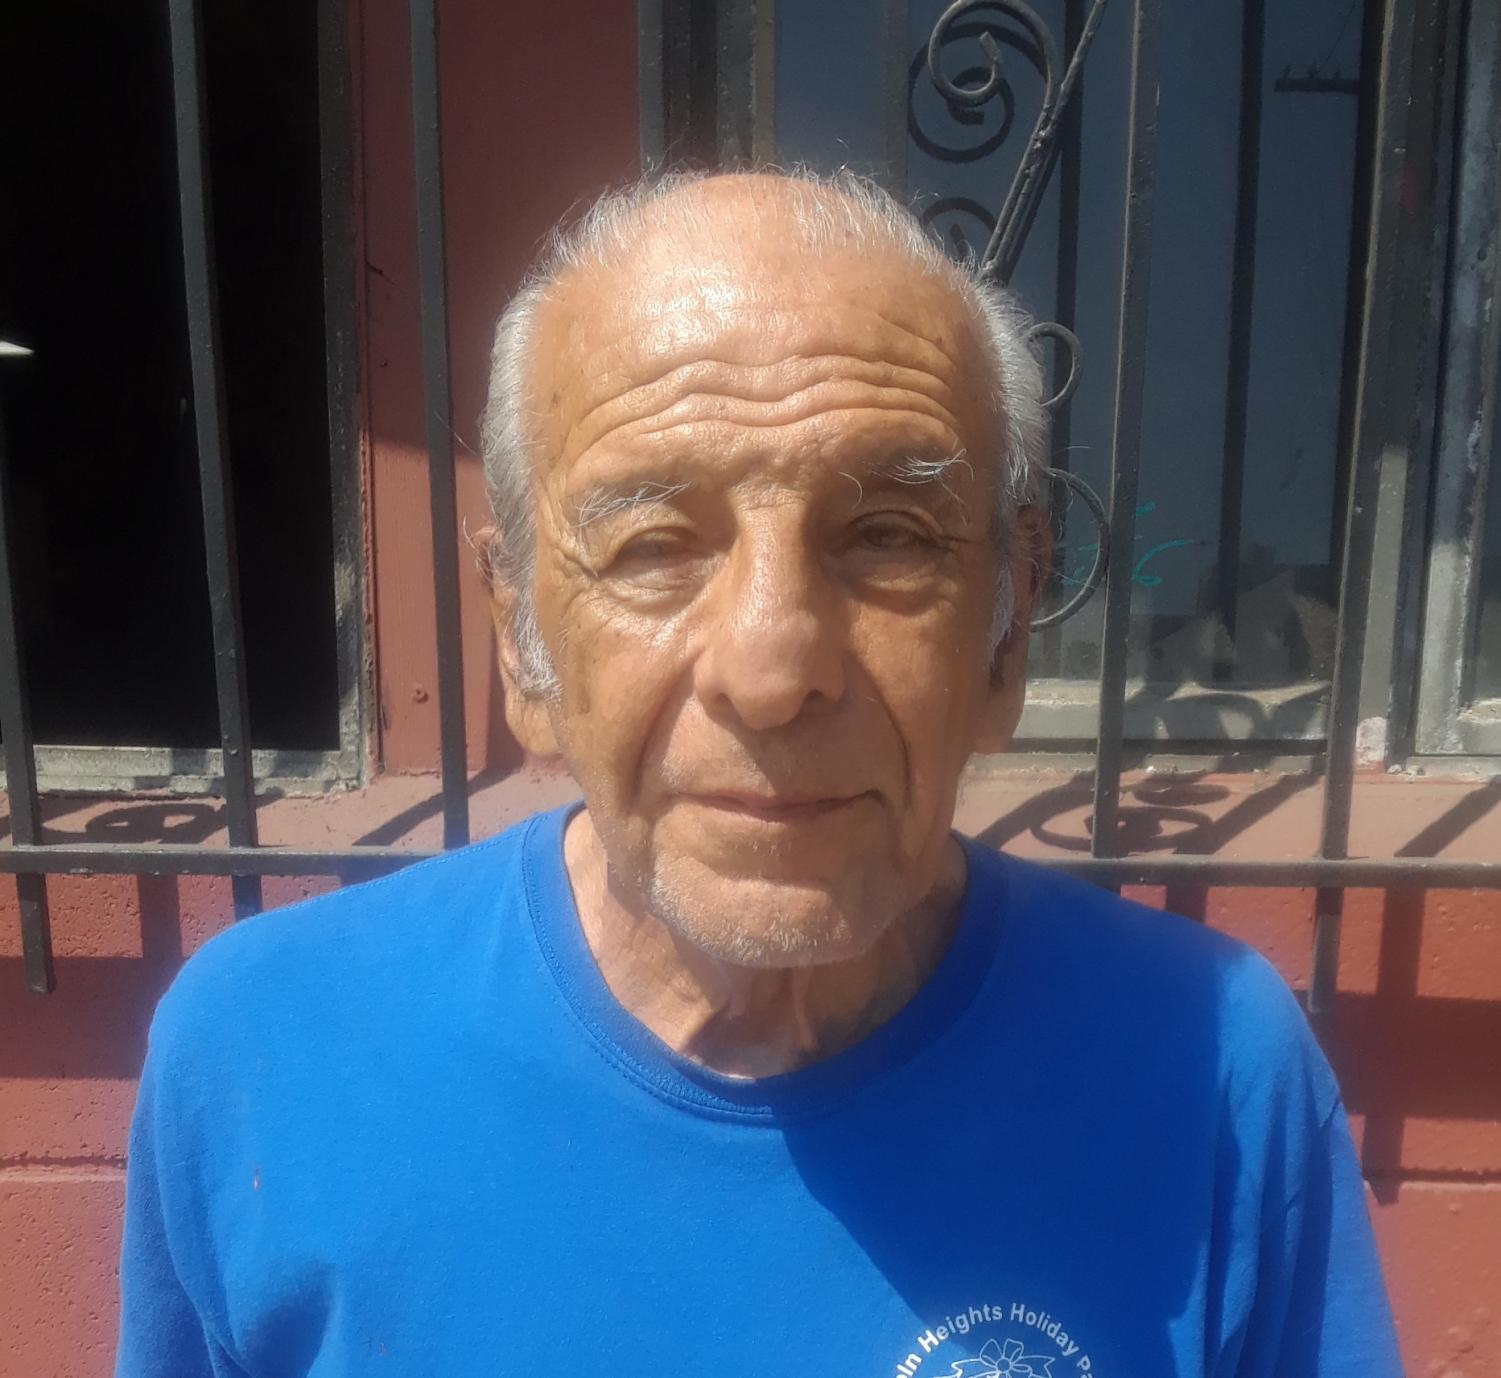 Photo of Gilbert Arevalo wearing a blue t-shirt and it is courtesy of Gilbert Arevalo.